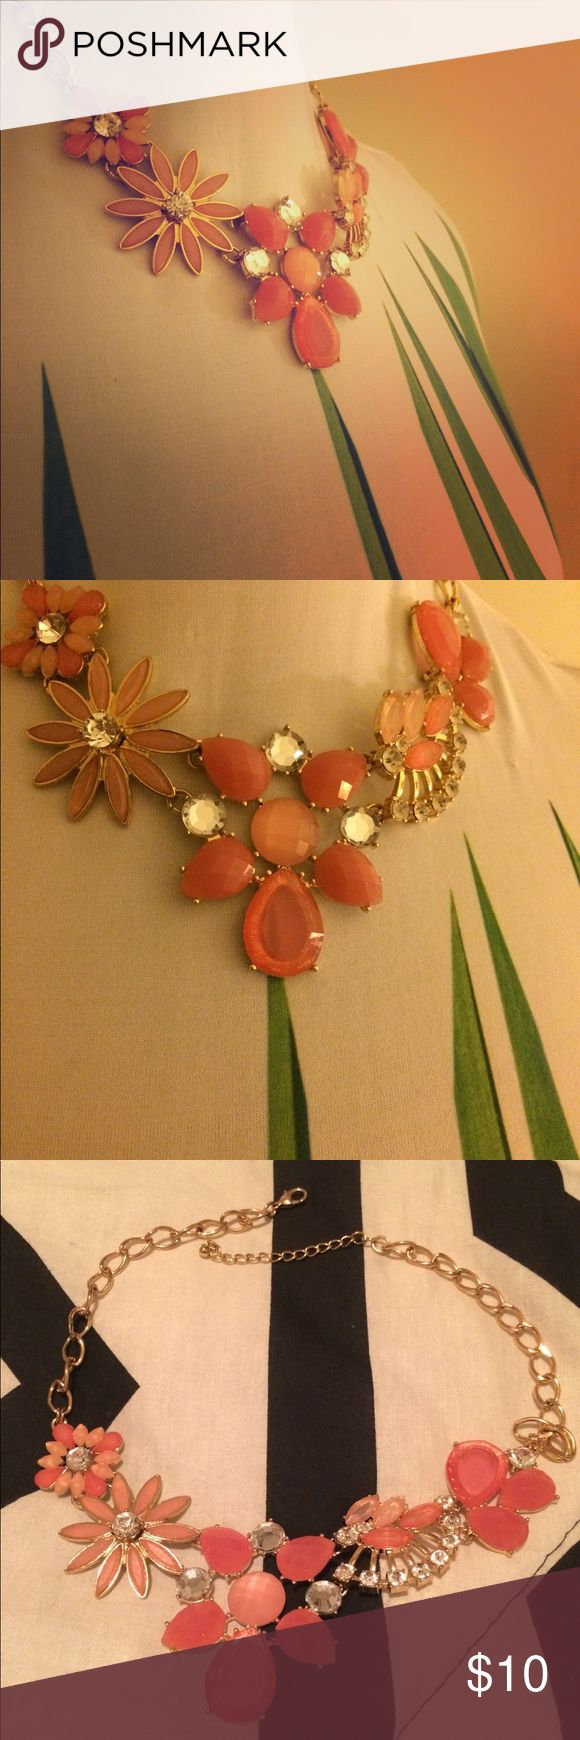 Coral Statement Necklace Never worn, no tags. Coral and rhinestone. Not positive on original brand, I believe it's Charlotte Russe. Charlotte Russe Jewelry Necklaces